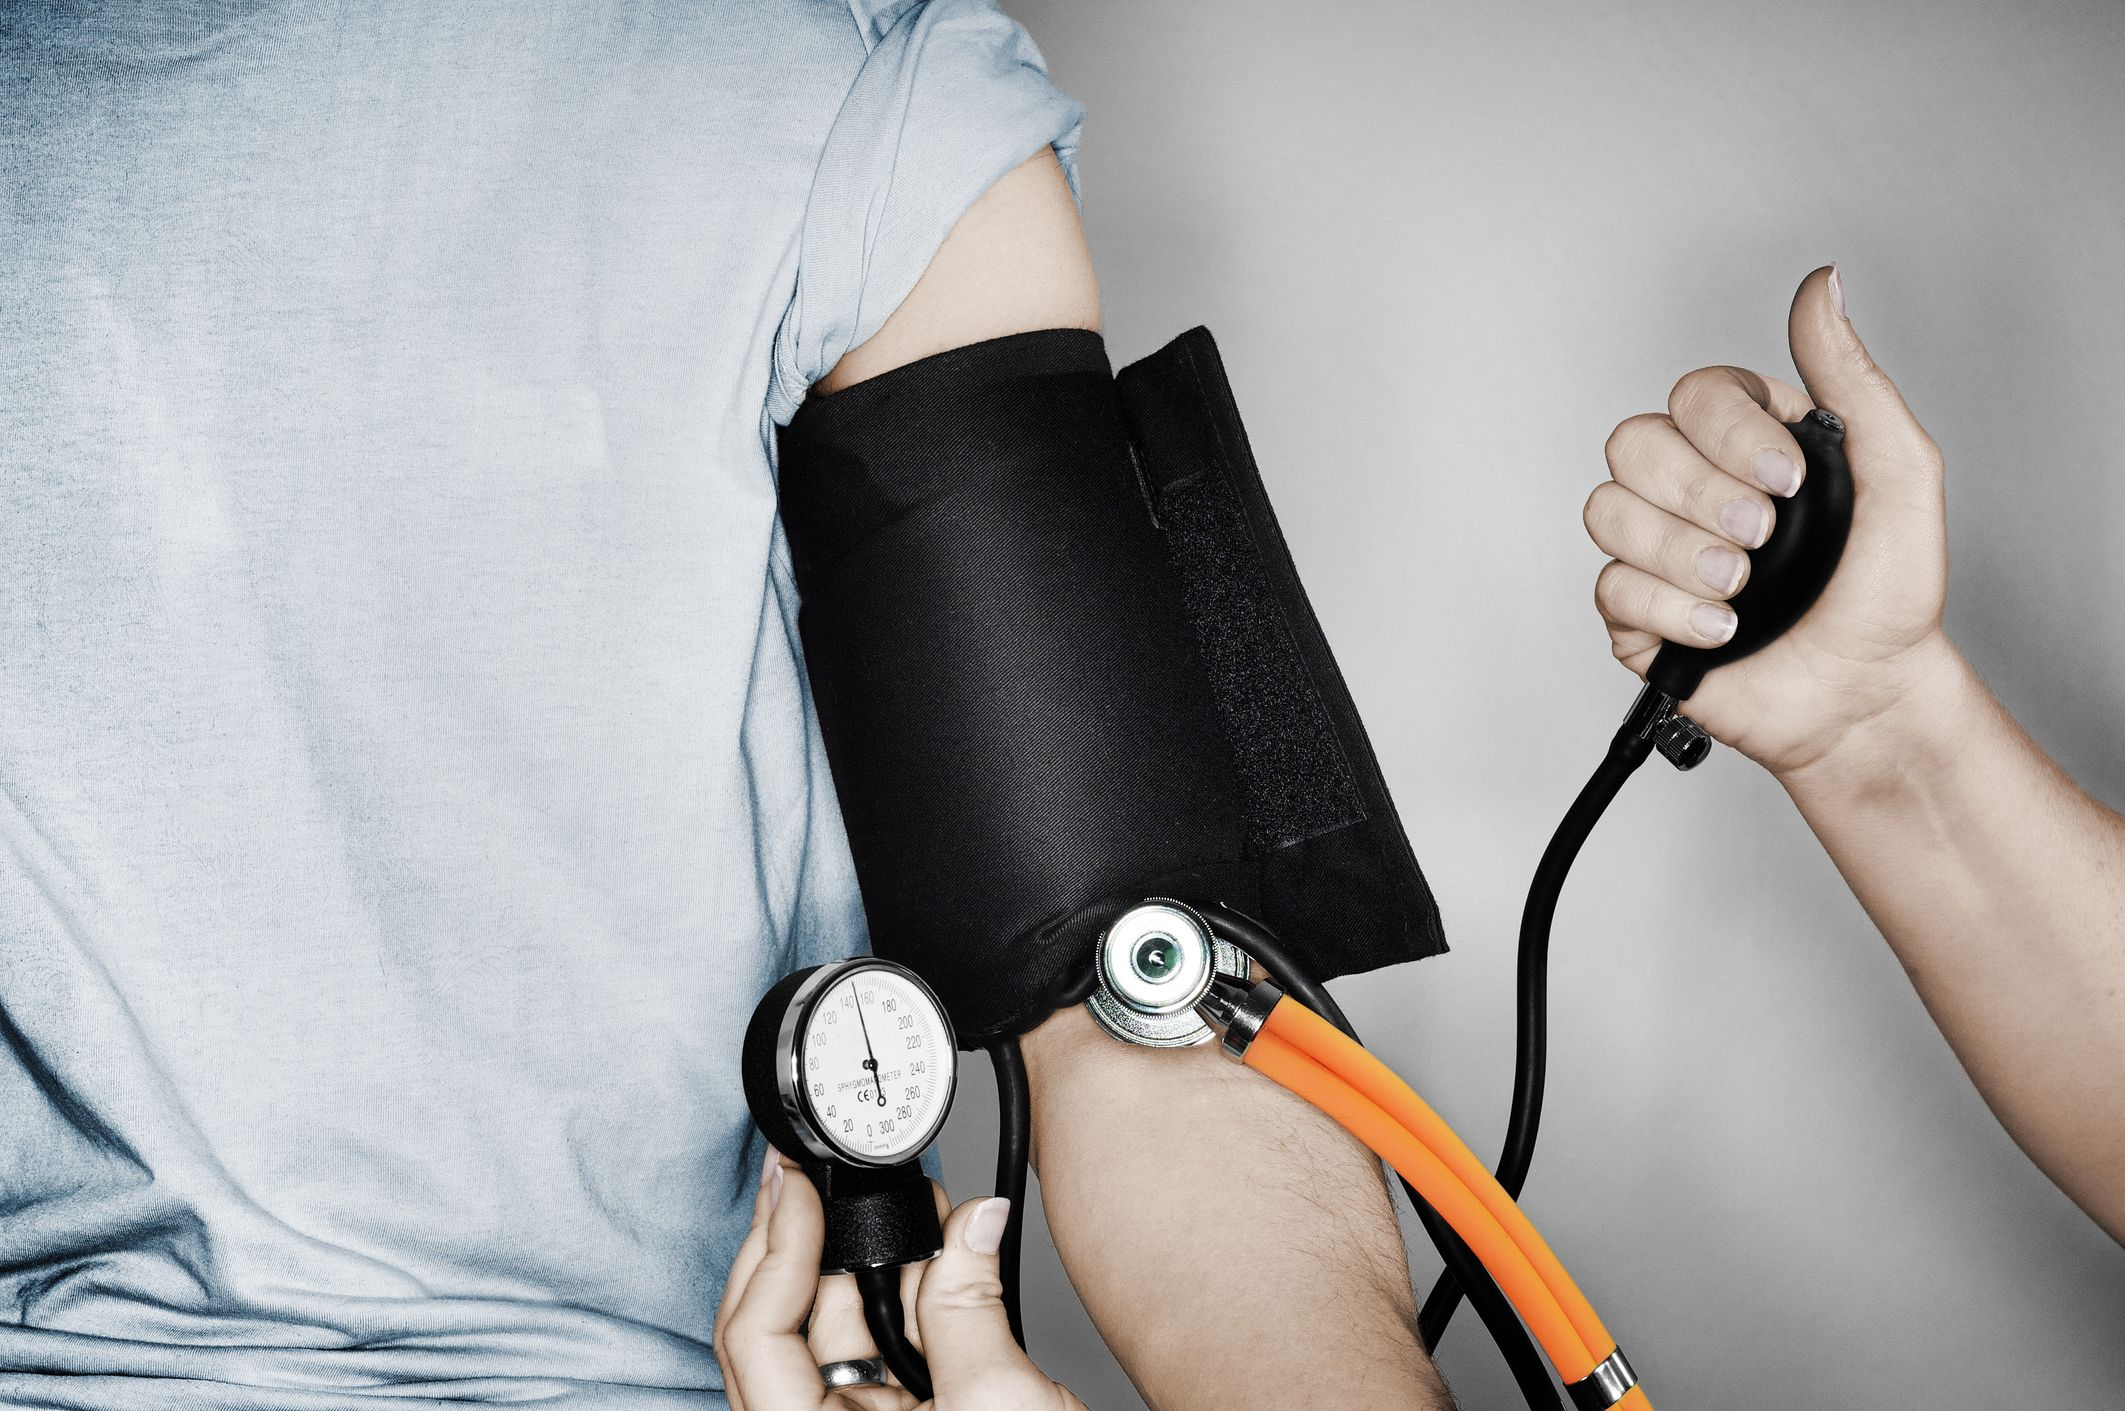 How to Lower Blood Pressure | Does Exercise Lower Blood Pressure?